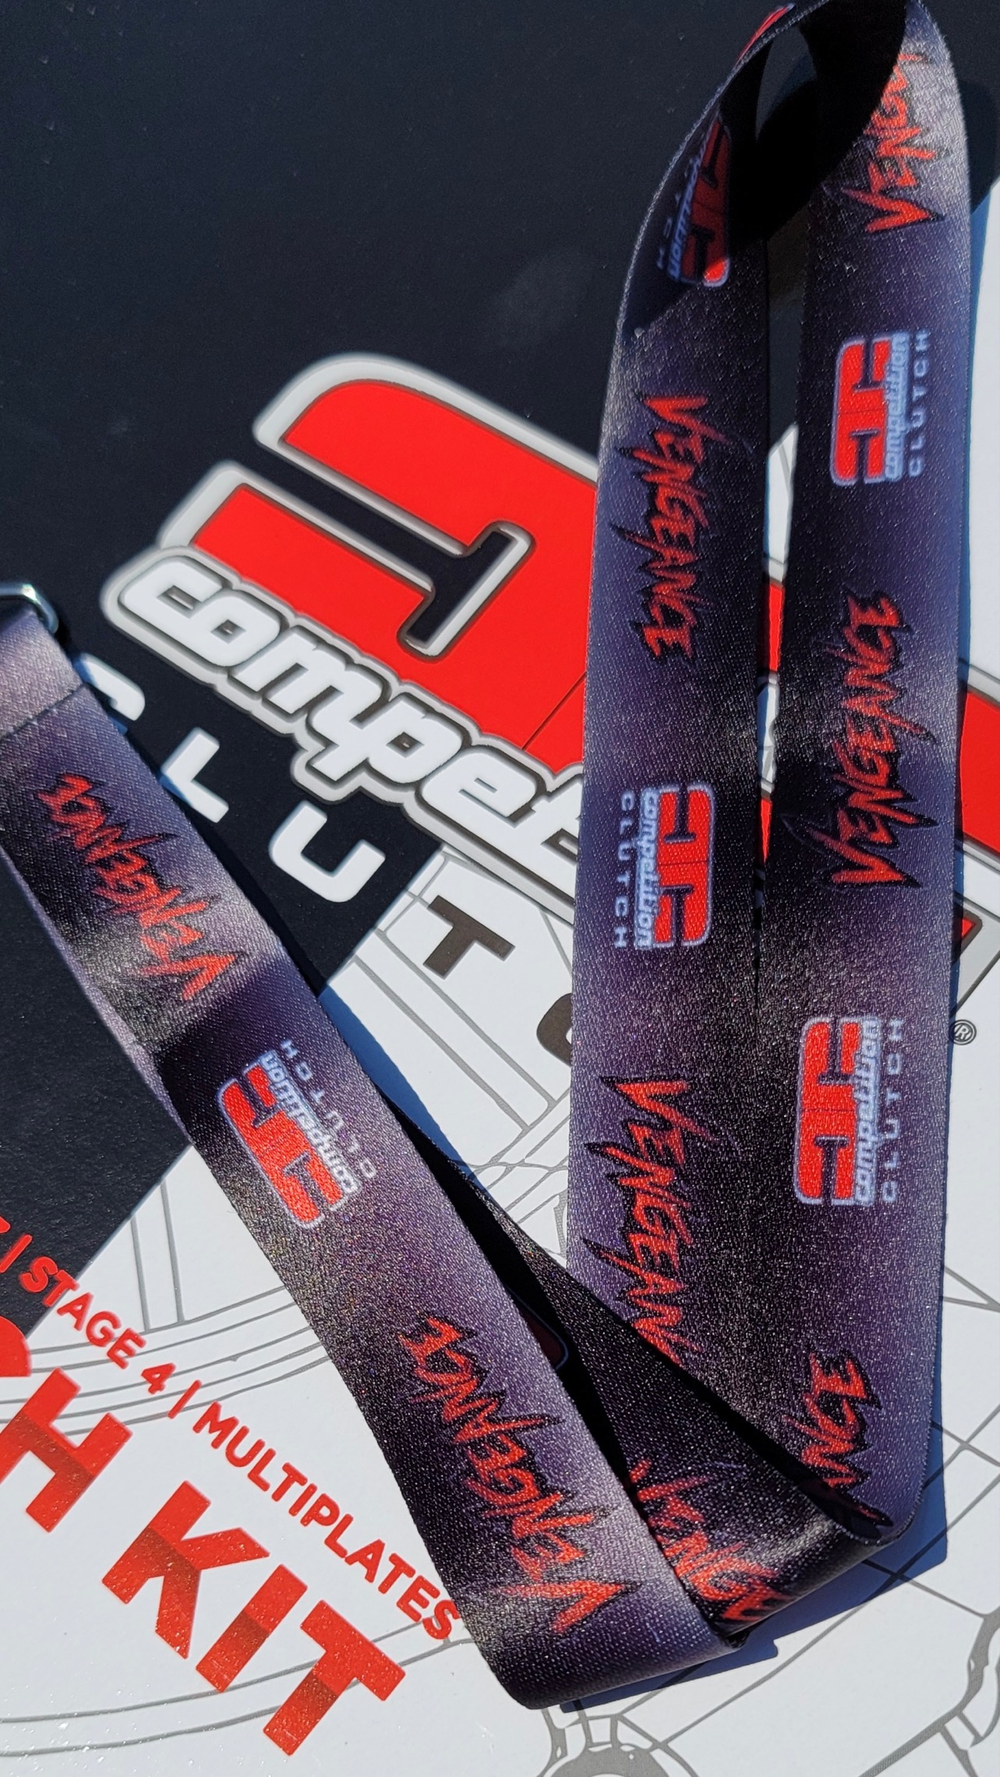 Vengeance from Competition Clutch Lanyards